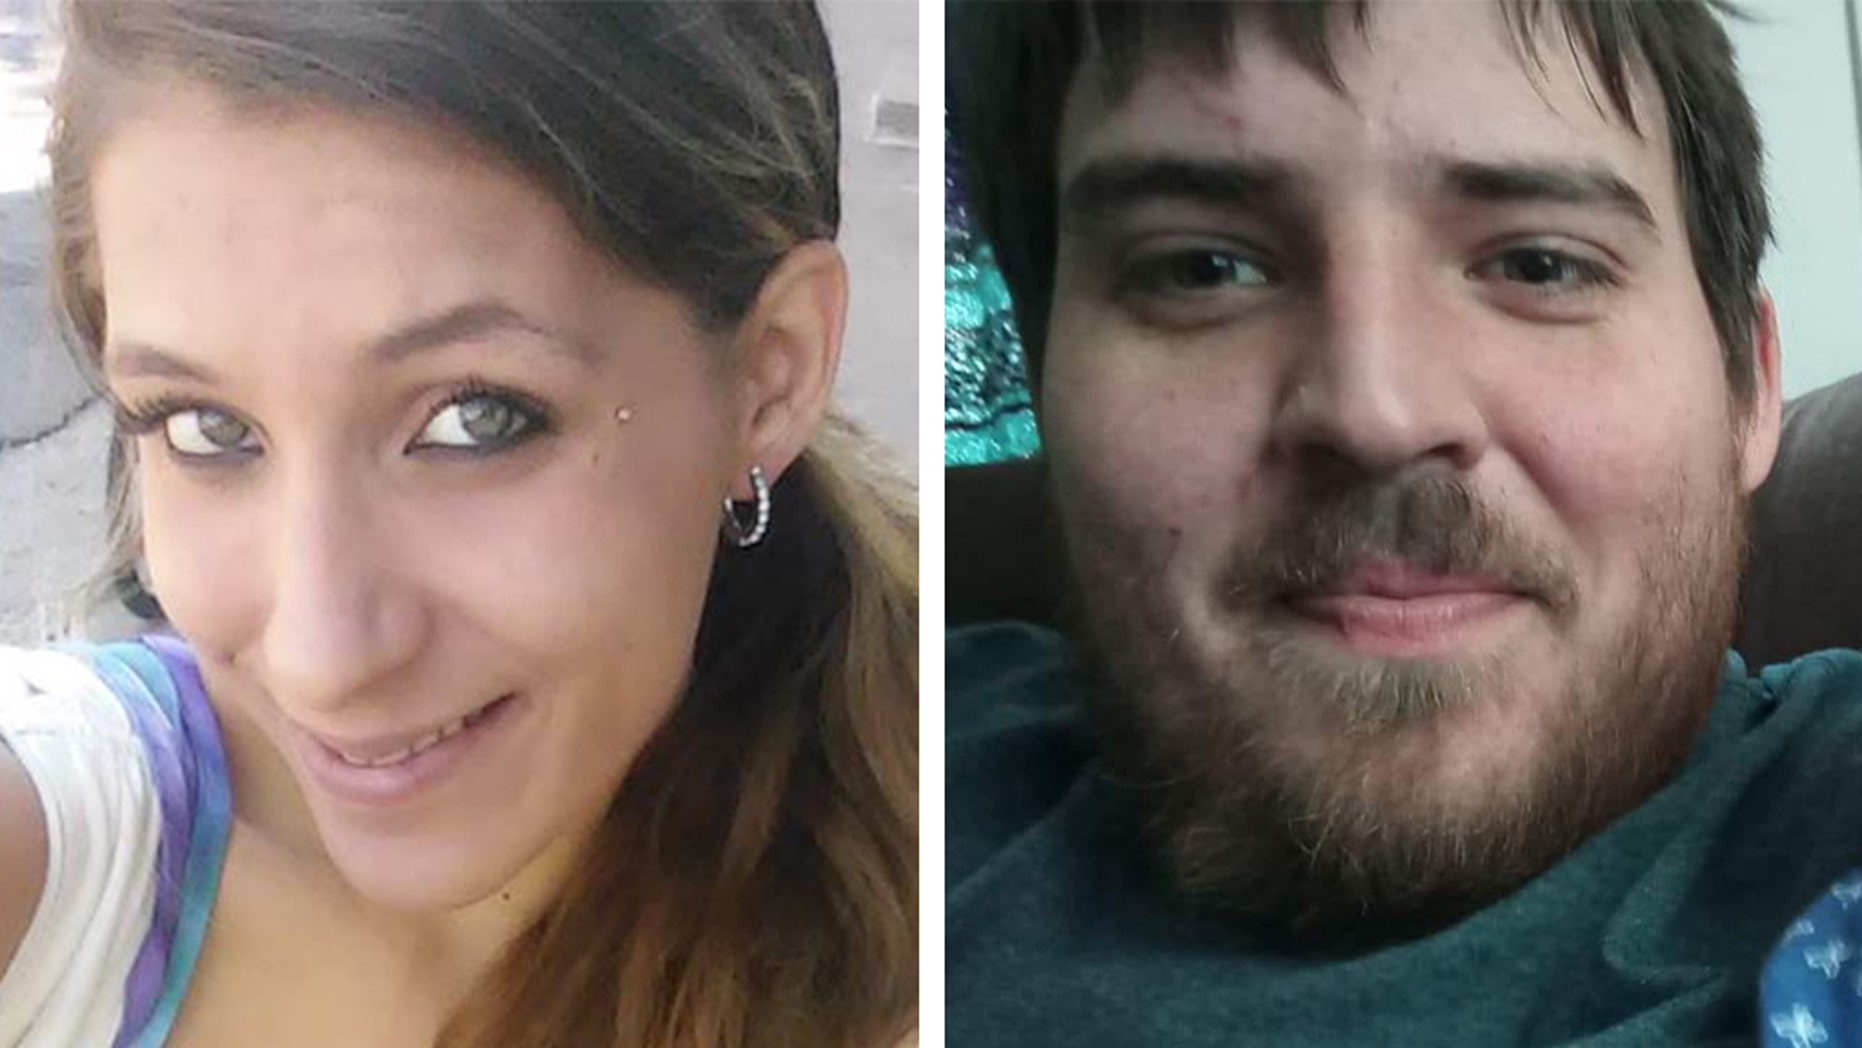 Baby Girl Found In Michigan Motel Room With Her Dead Parents, Investigators Say Jessica-Bramer-and-Christian-Reed